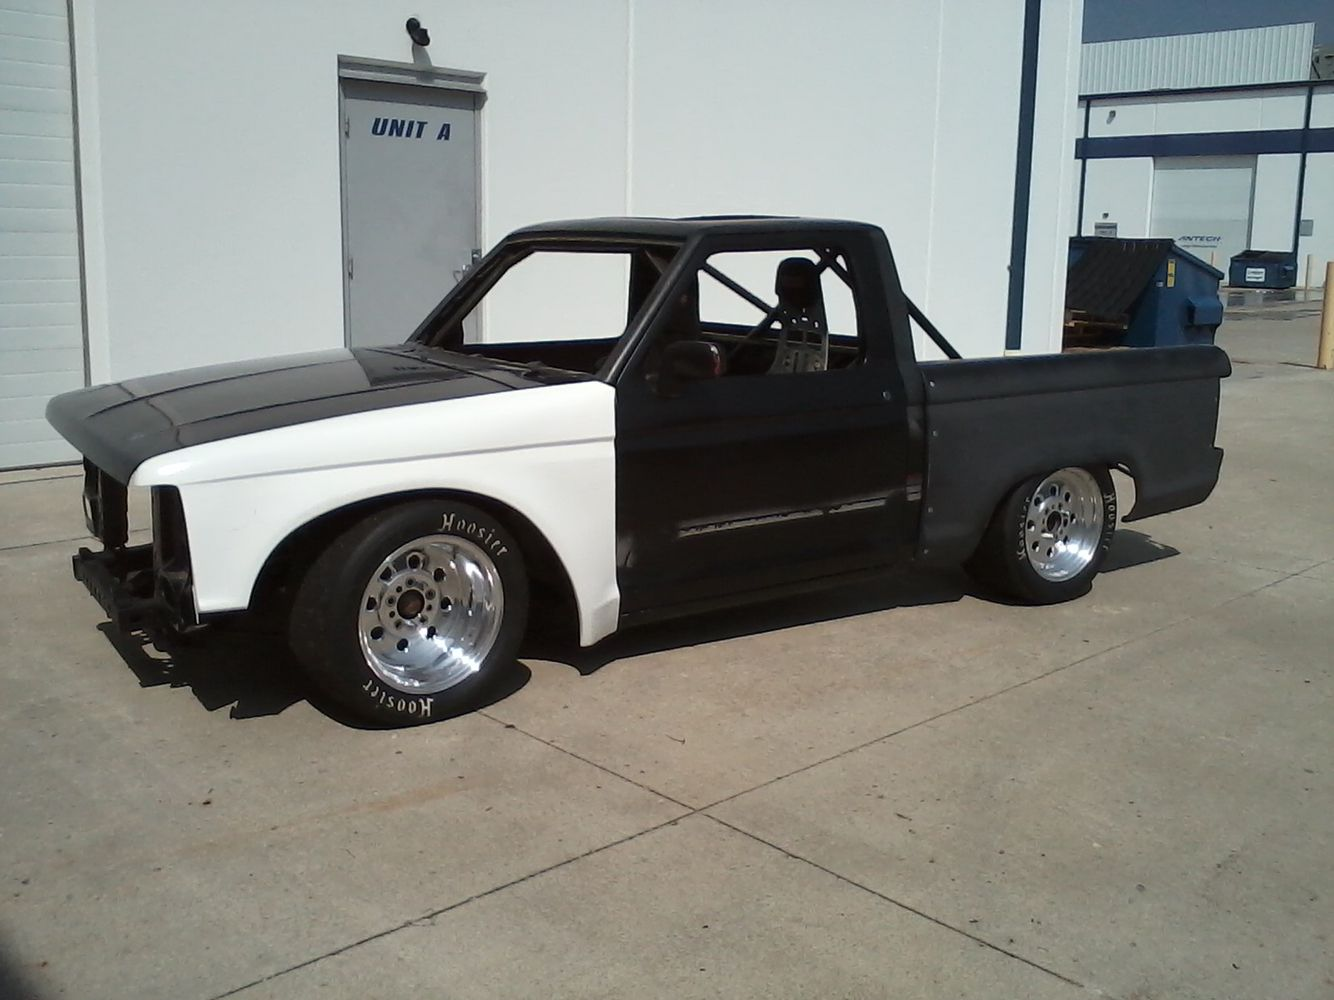 gumby and my ford ranger being built for scca next year full tube chassis and sr20det powered [ 1334 x 1000 Pixel ]